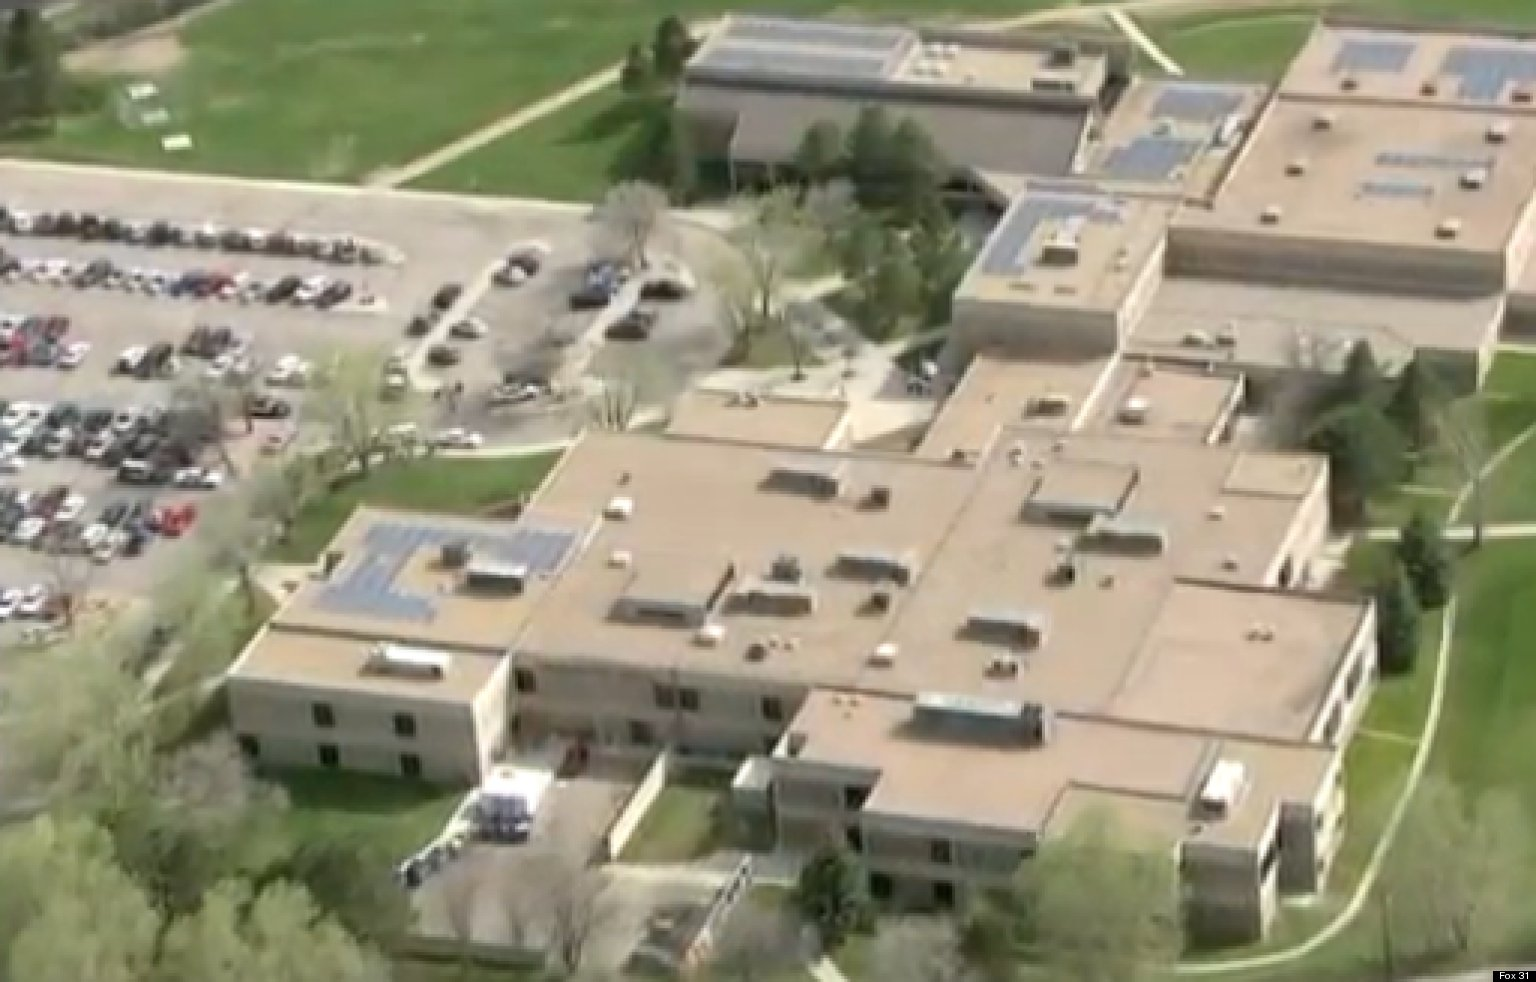 Arrest Made After Explosive Device Found In A Boulder County High School